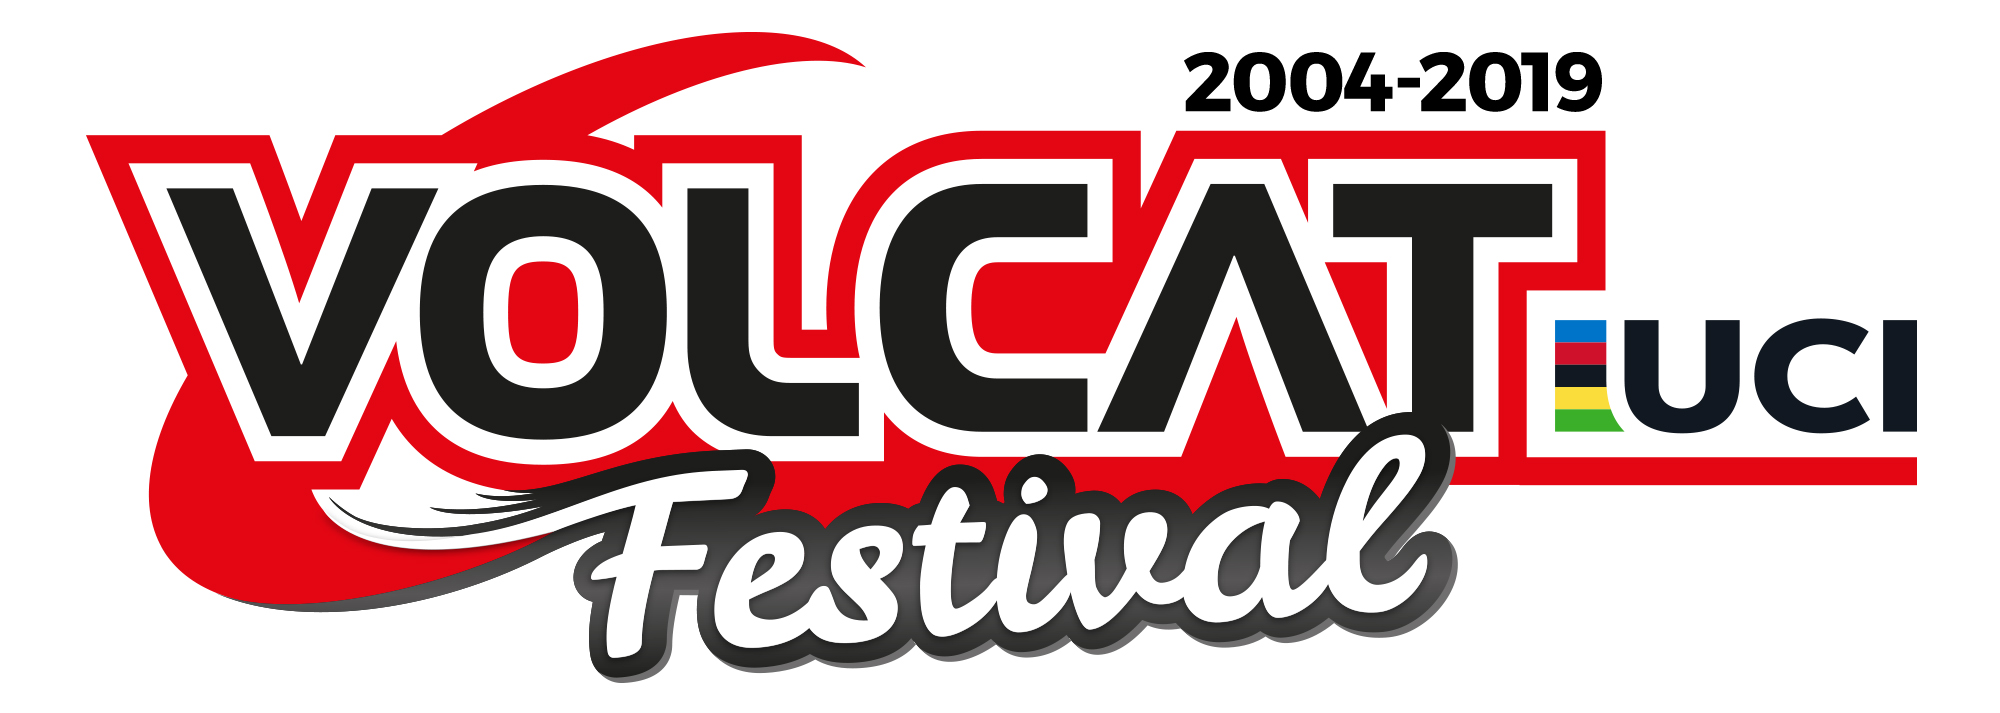 VolCAT 2019: 15 years of history